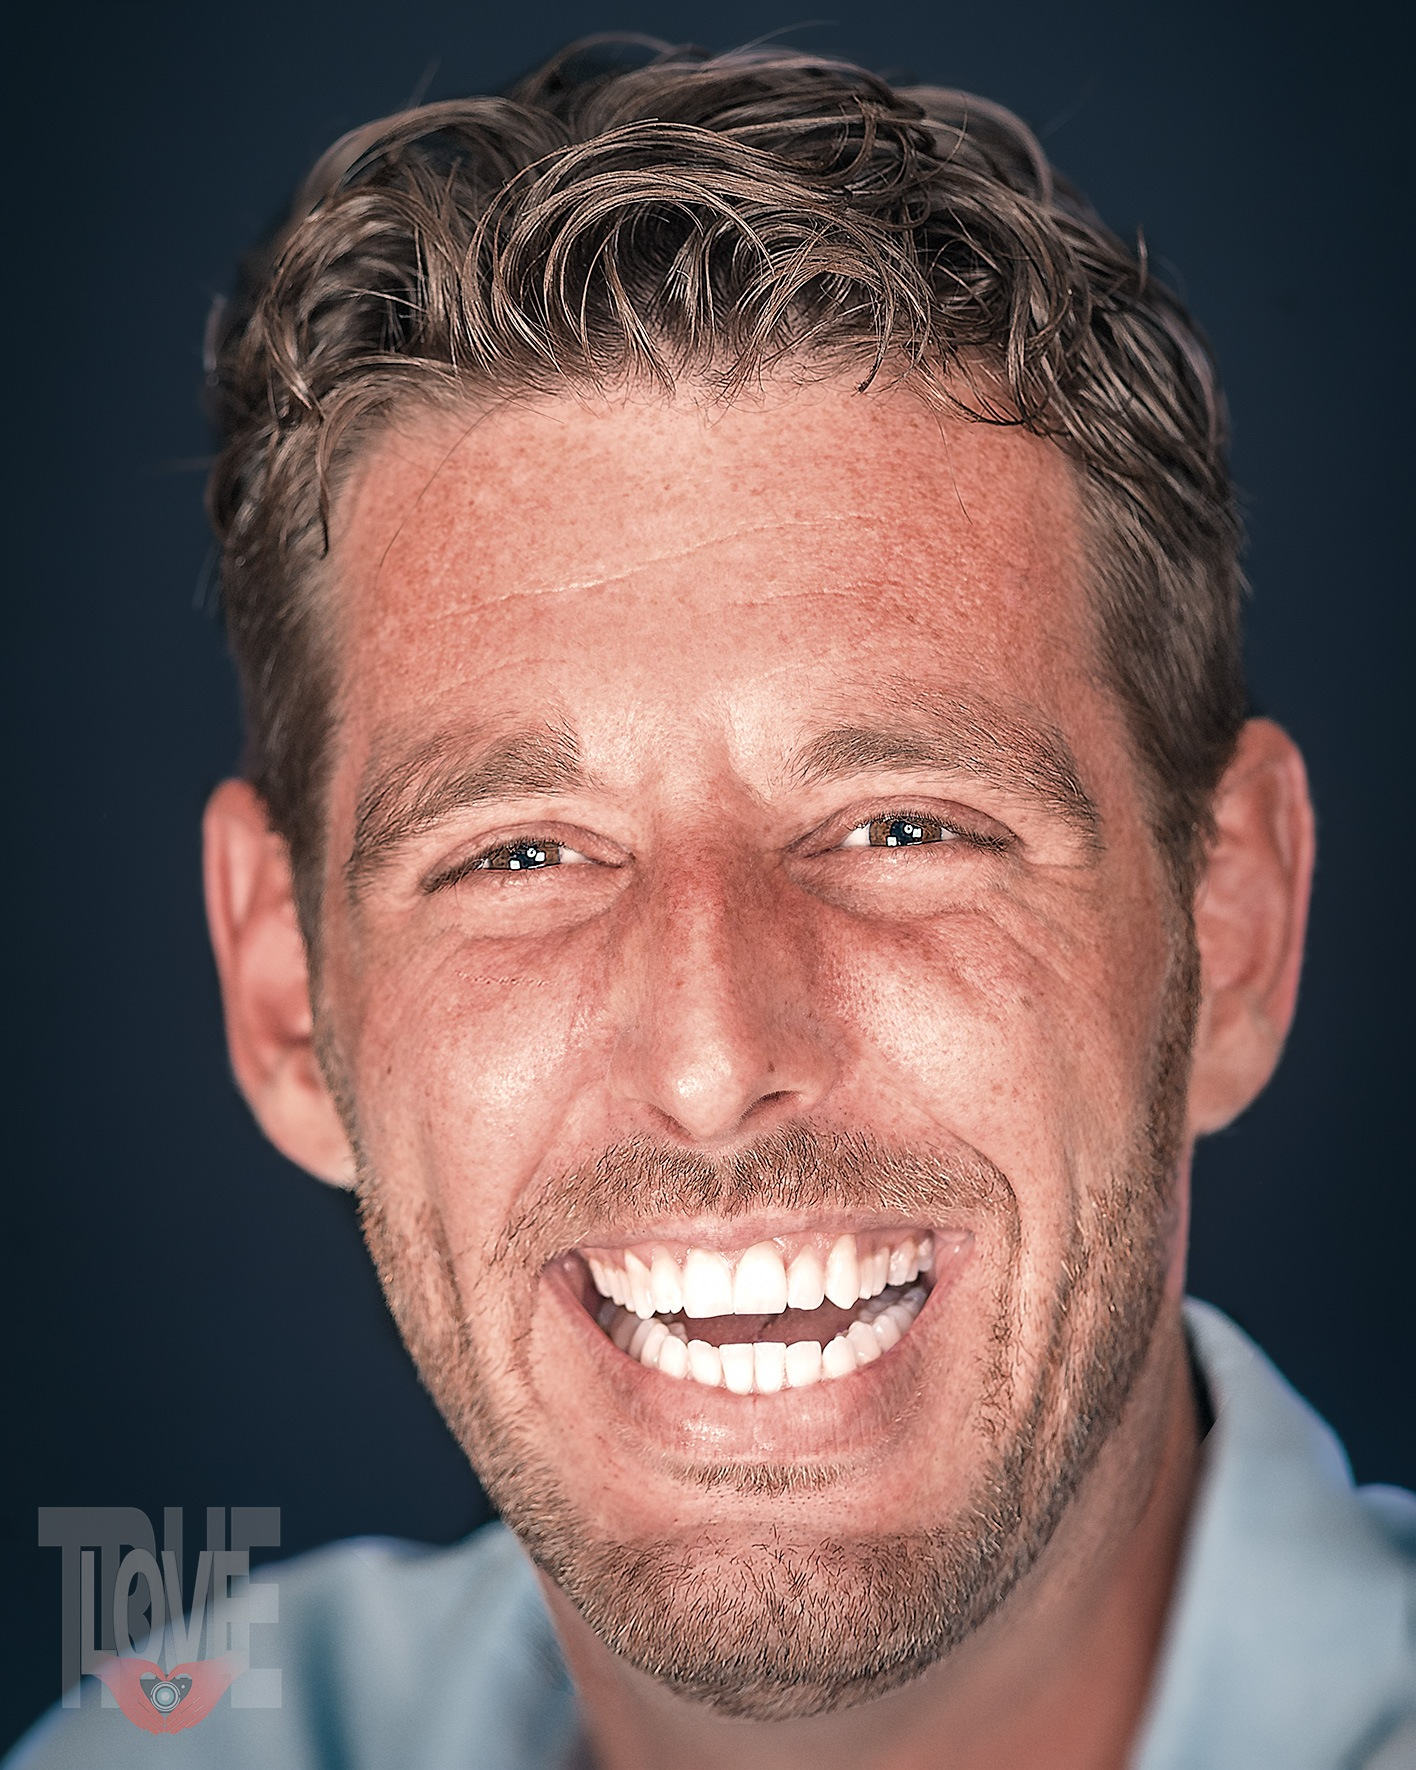 Marc laughing by True Love Photography